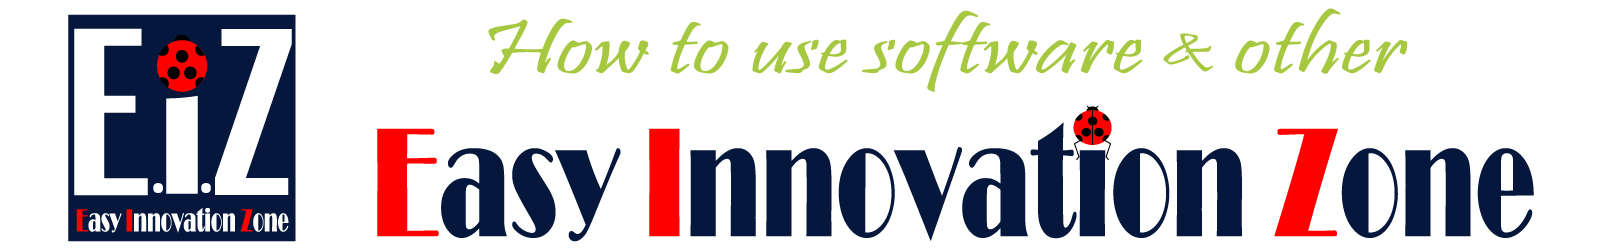 Easy Innovation Zone